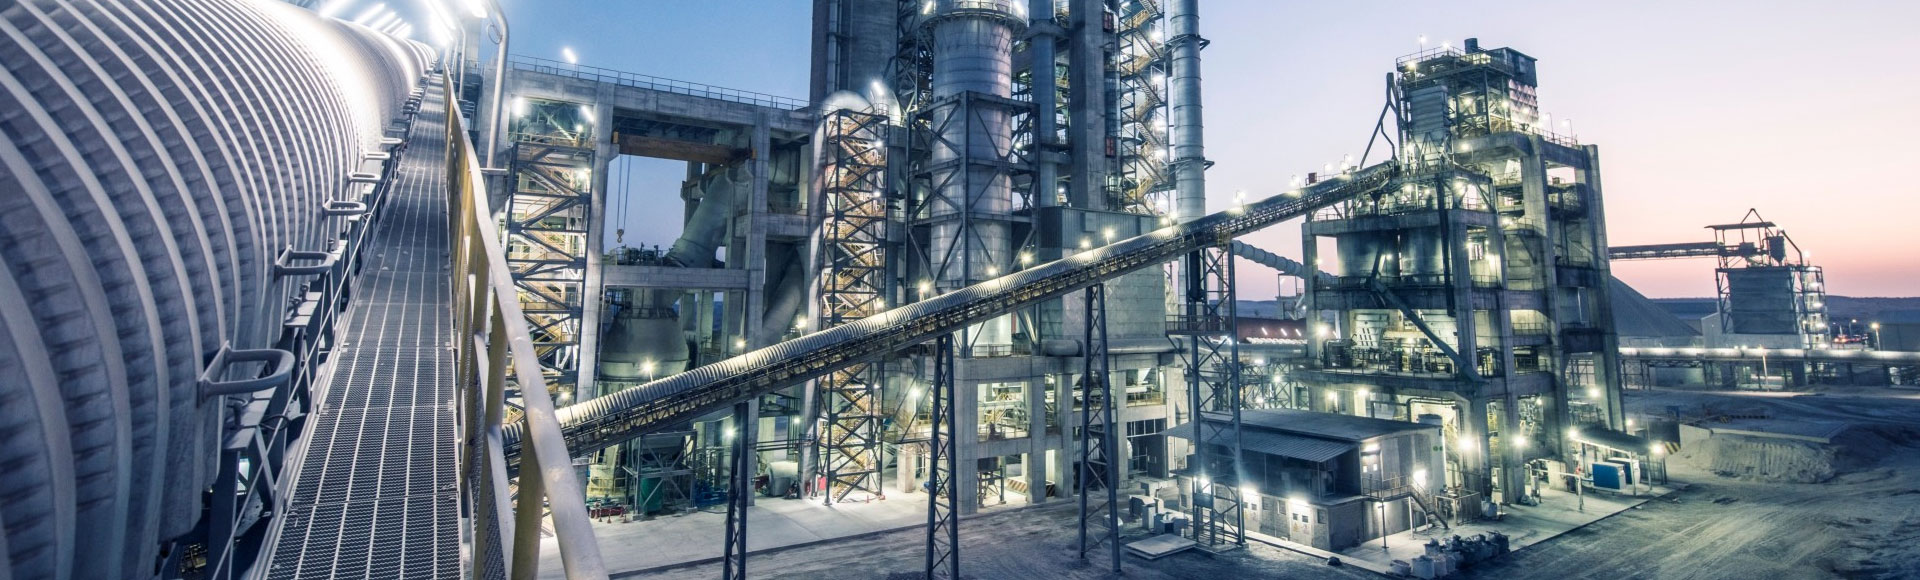 Reduction of Auxiliary Power Consumption for a Cement Plant in Rajasthan